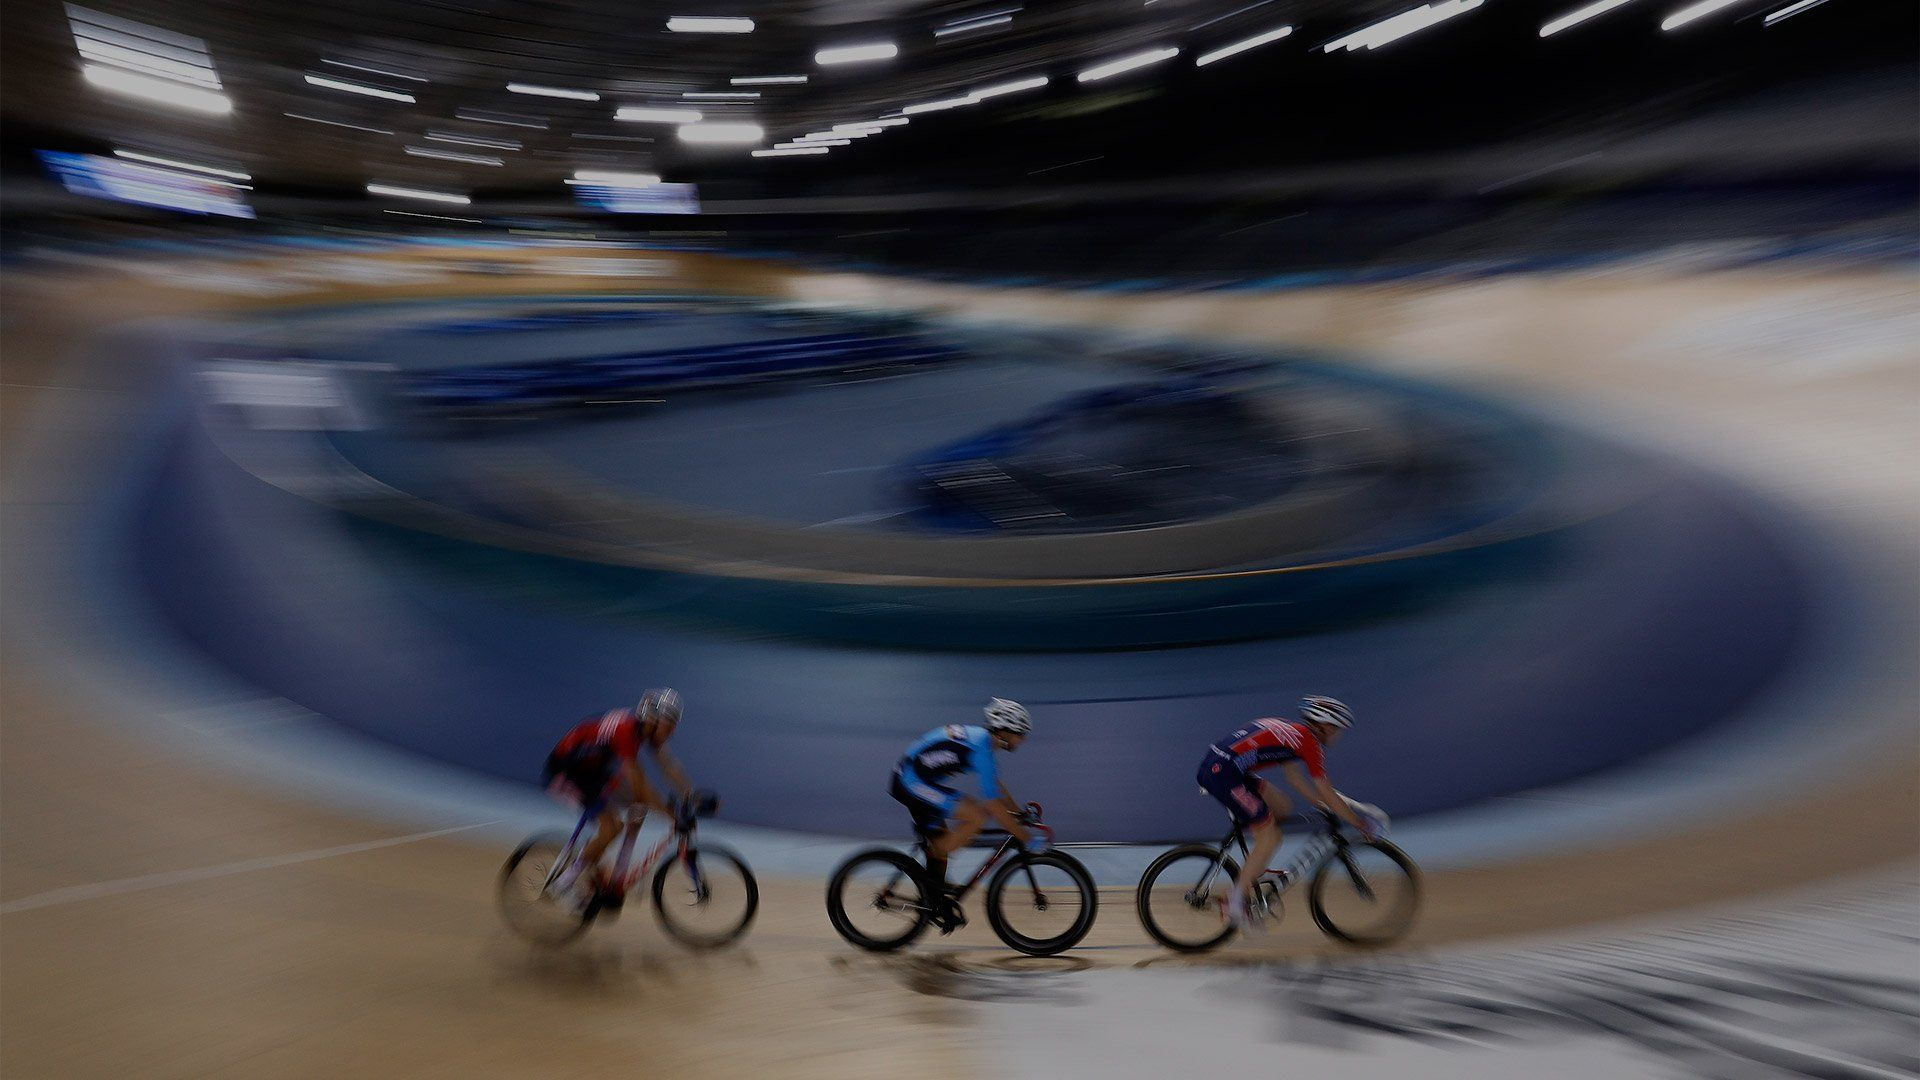 Three cyclists ride around a velodrome; the cyclists are in sharp focus, with everything else blurred.